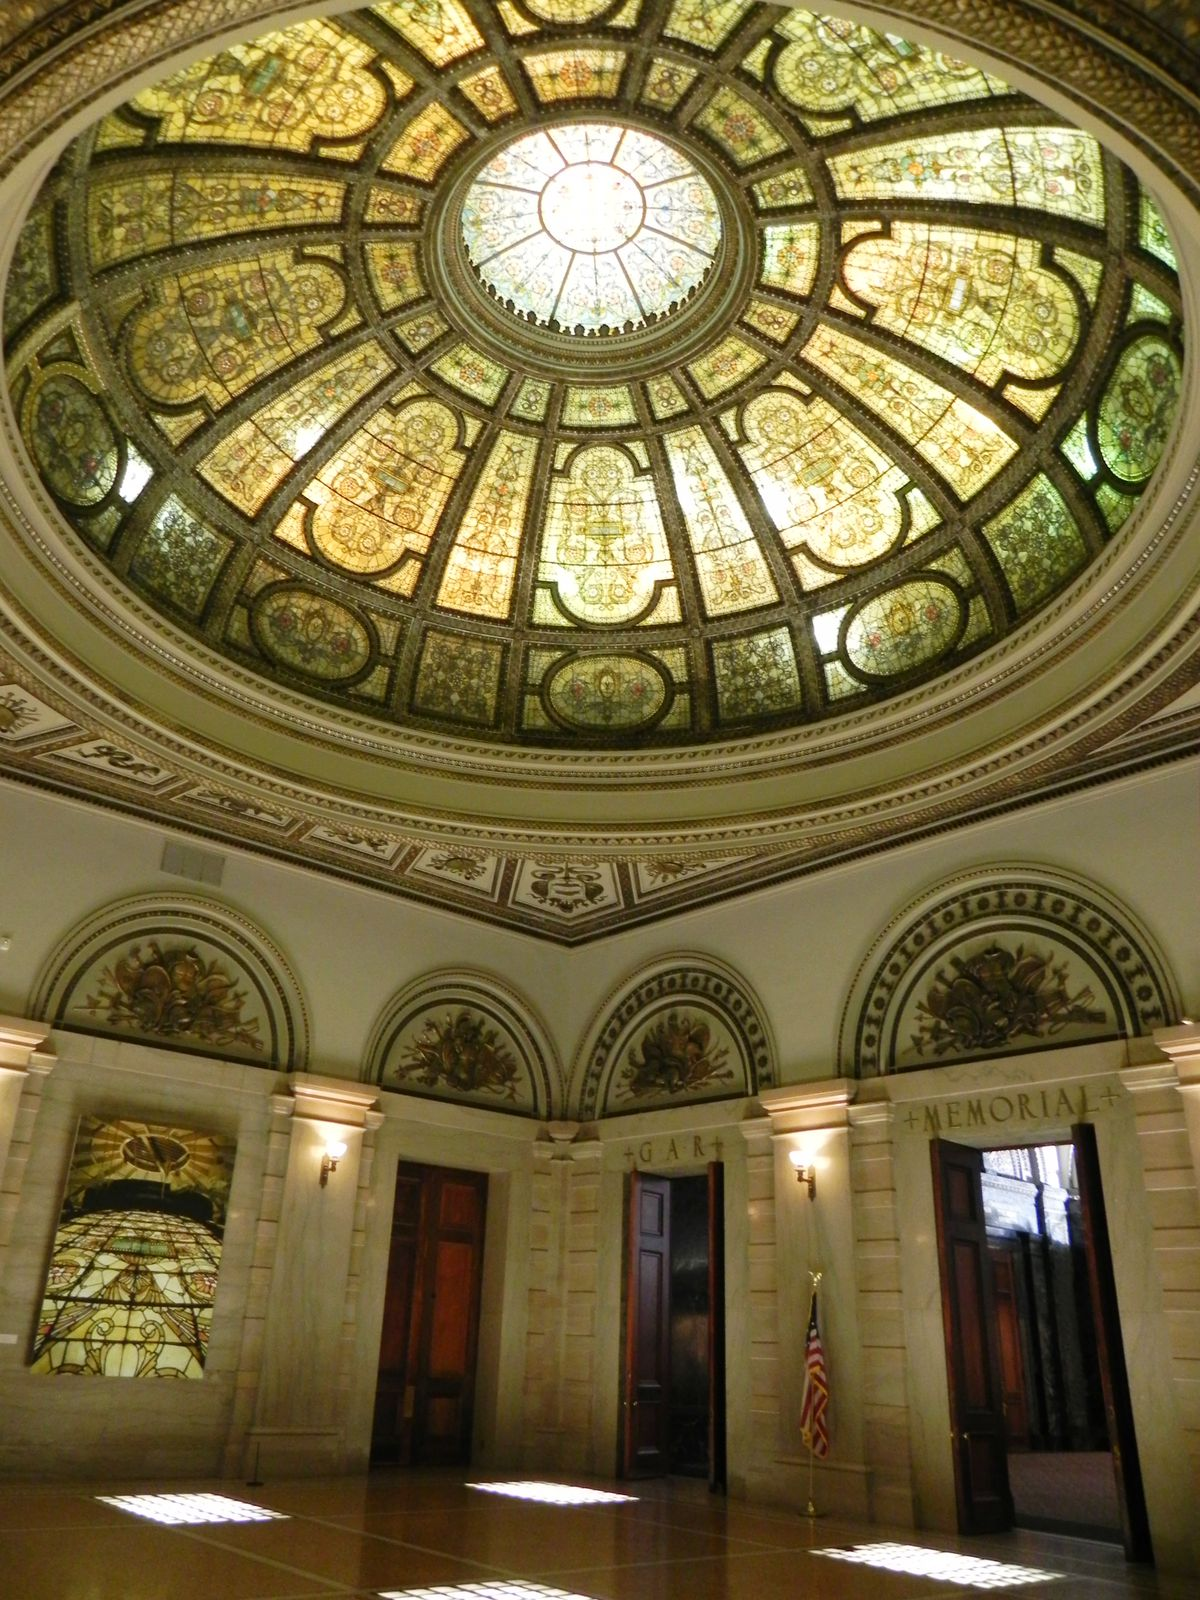 The dome and interiors of the Grand Army of the Republic Memorial Hall and Rotunda of the Chicago Cultural Center were designed by the Tiffany Glass and Decorating Co., a predecessor of the better-known Tiffany Studios.